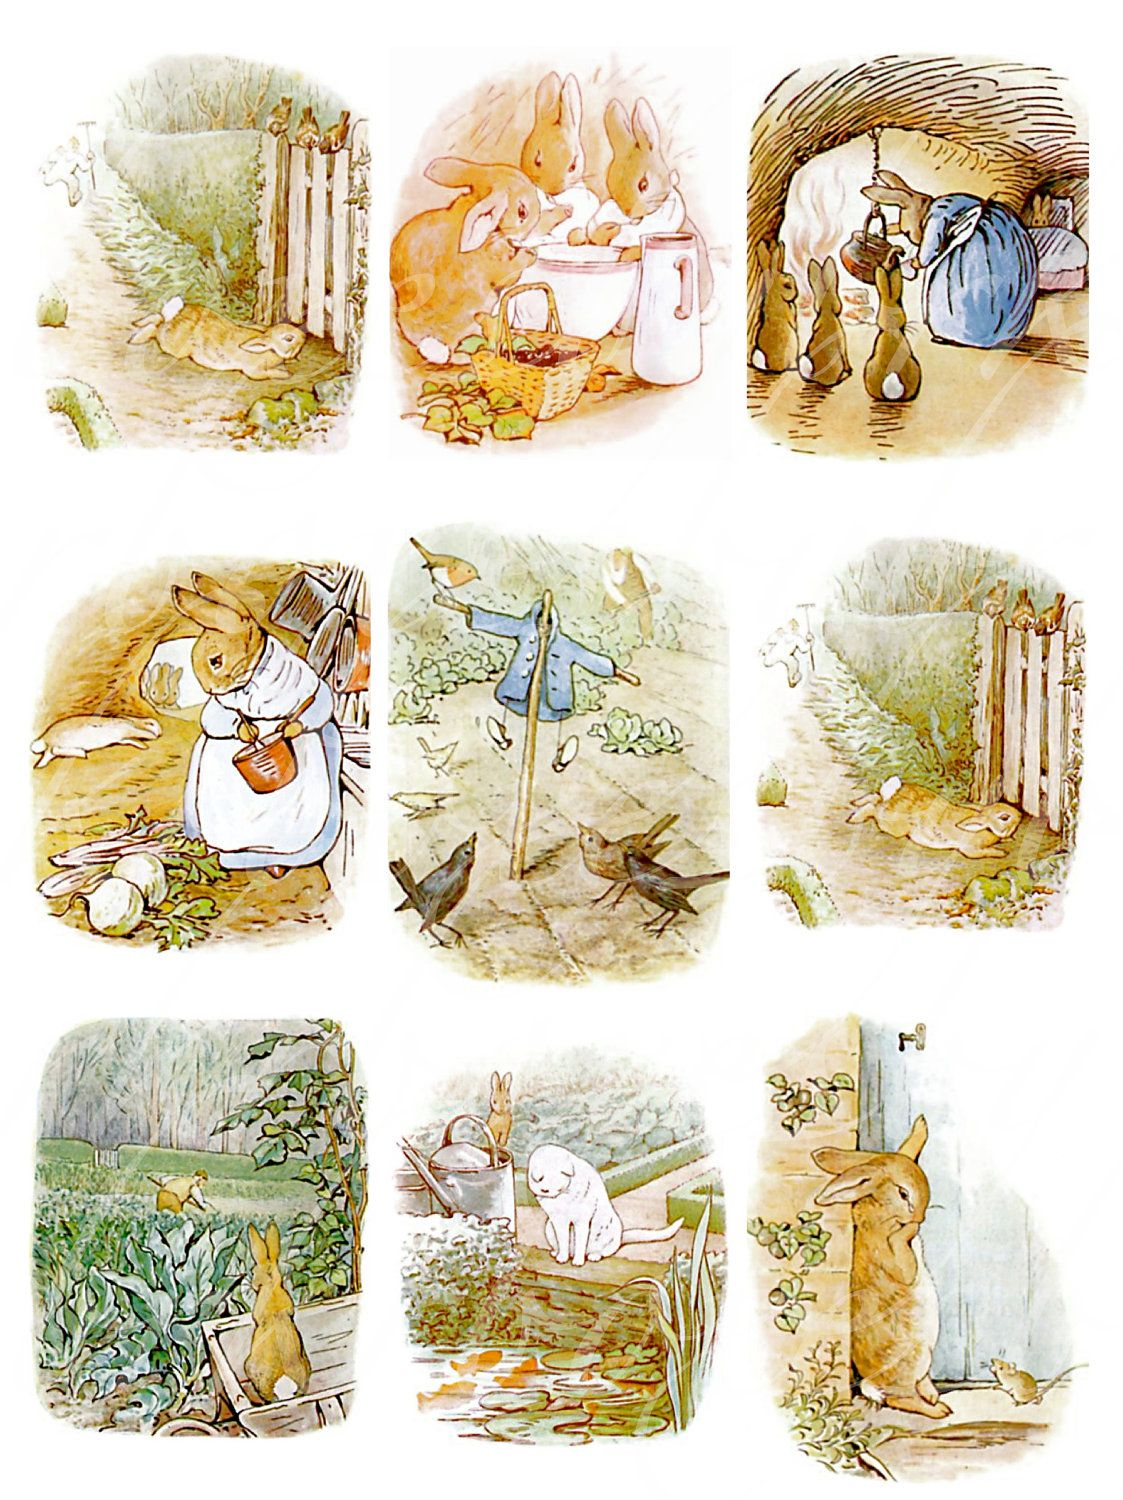 Instant Download Of 24 Peter Rabbit Images From By Boxesbybrkr 3 50